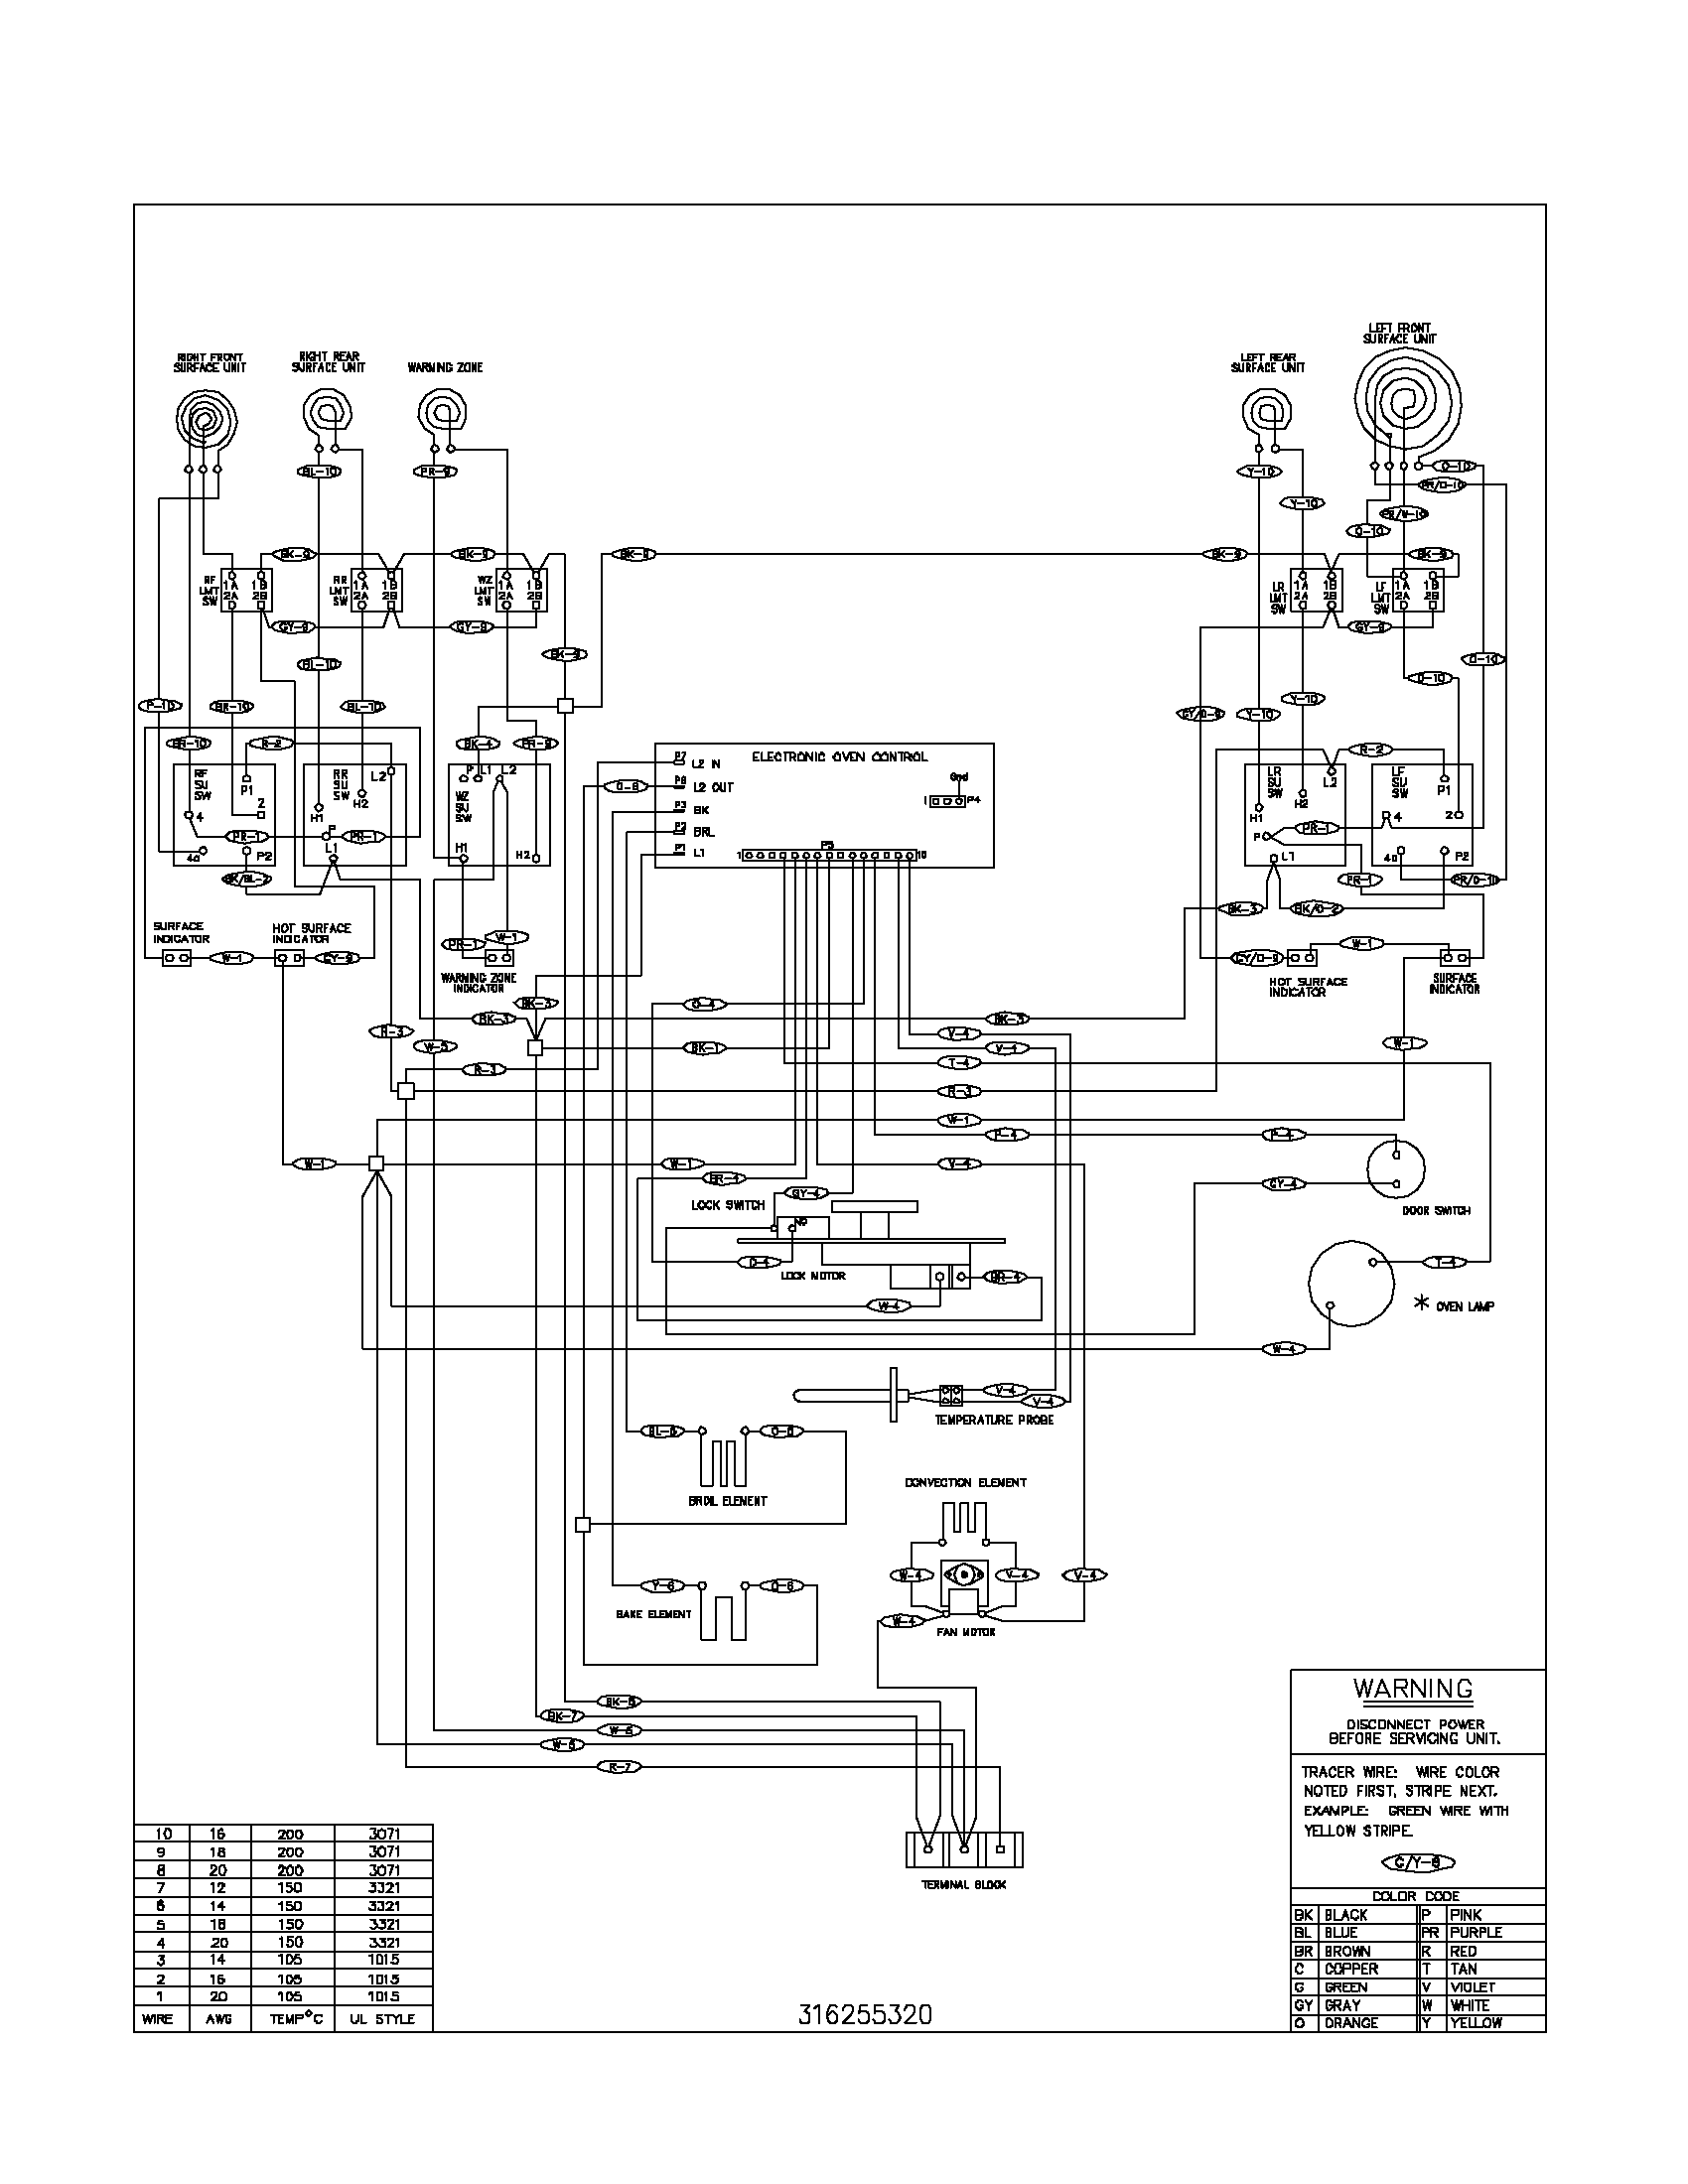 whirlpool feflacc electric range timer stove clocks and fefl88acc electric range wiring diagram parts diagram